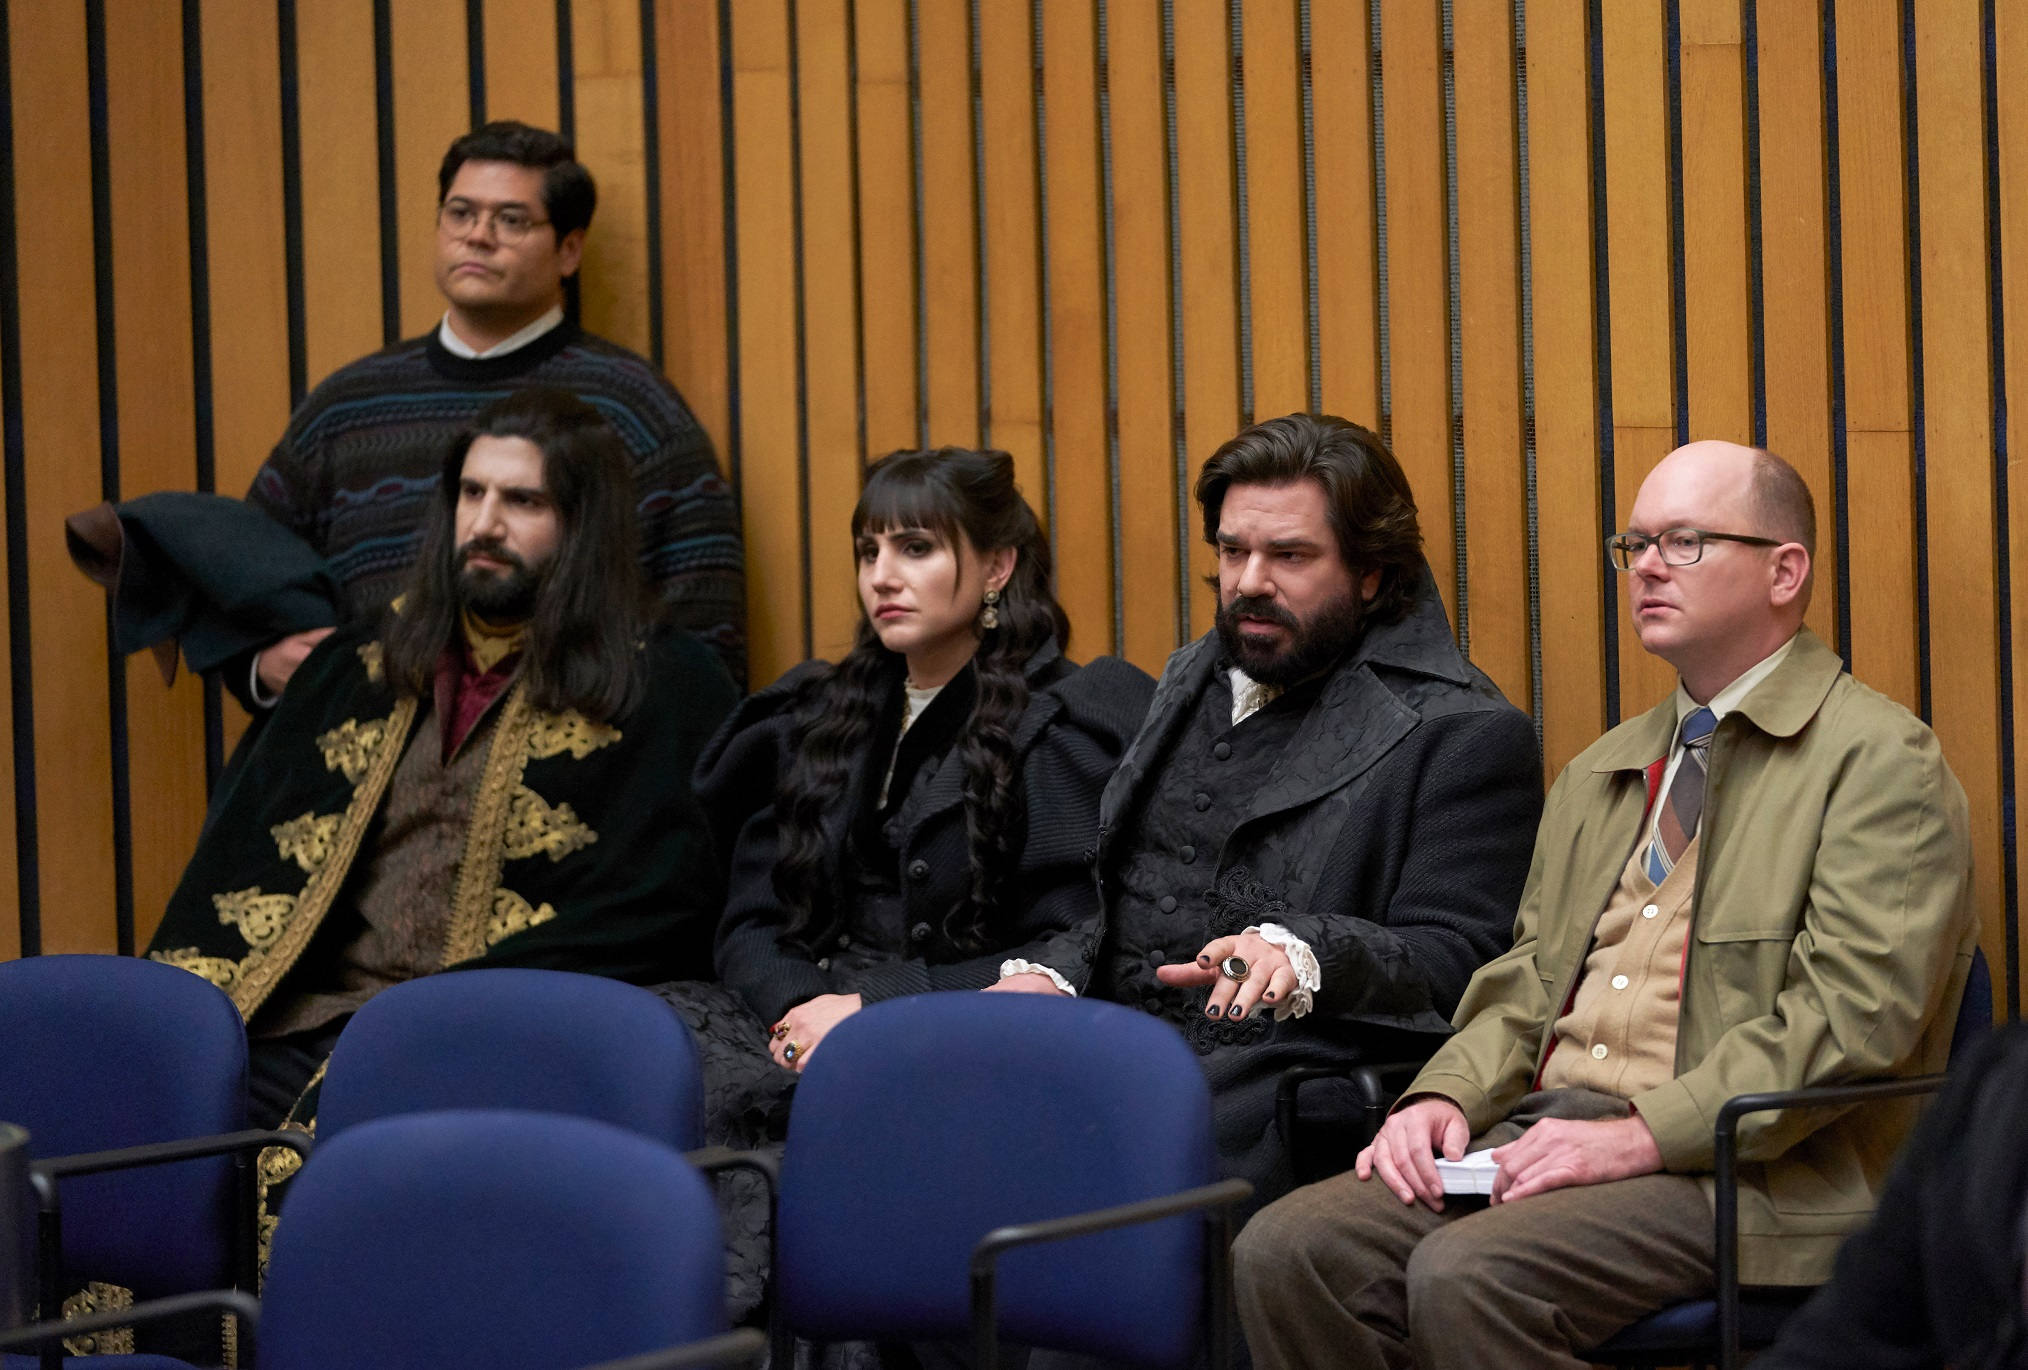 what we do in the shadows cast season 1